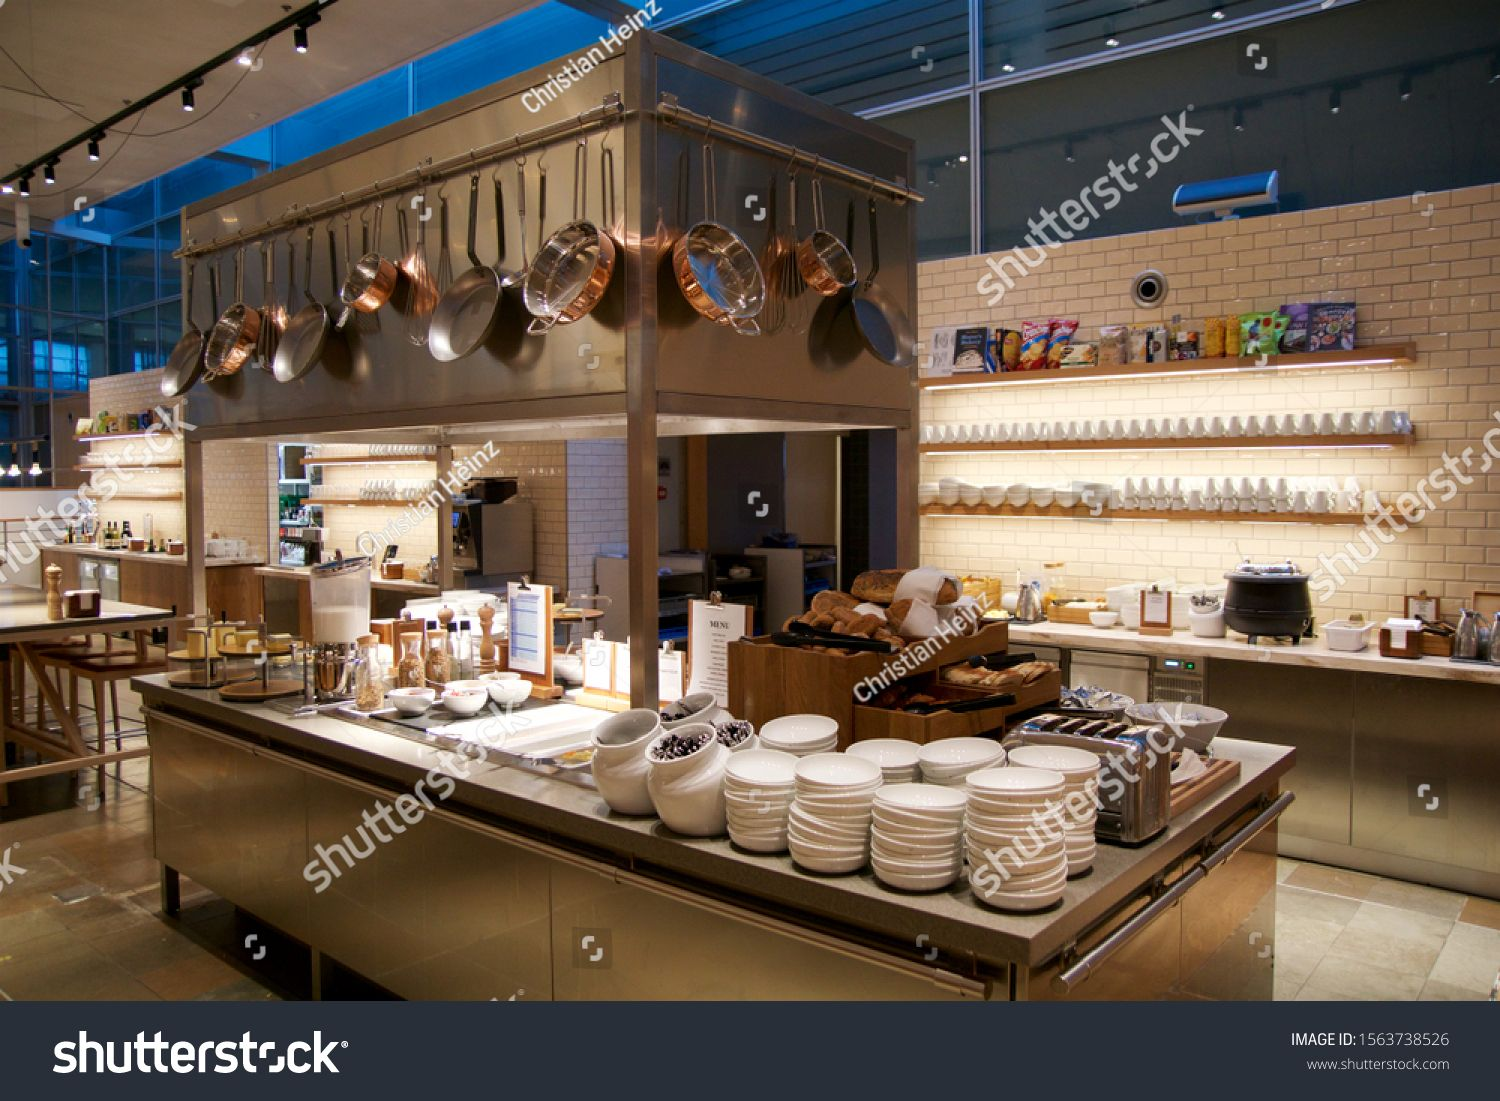 Copenhagen Denmark Nov 24th 2018 Airport Business Class Lounge Interior Of Sas Buffet And Eating Area In A Frequent Flyer Lounge Food And Drink Copenhagen